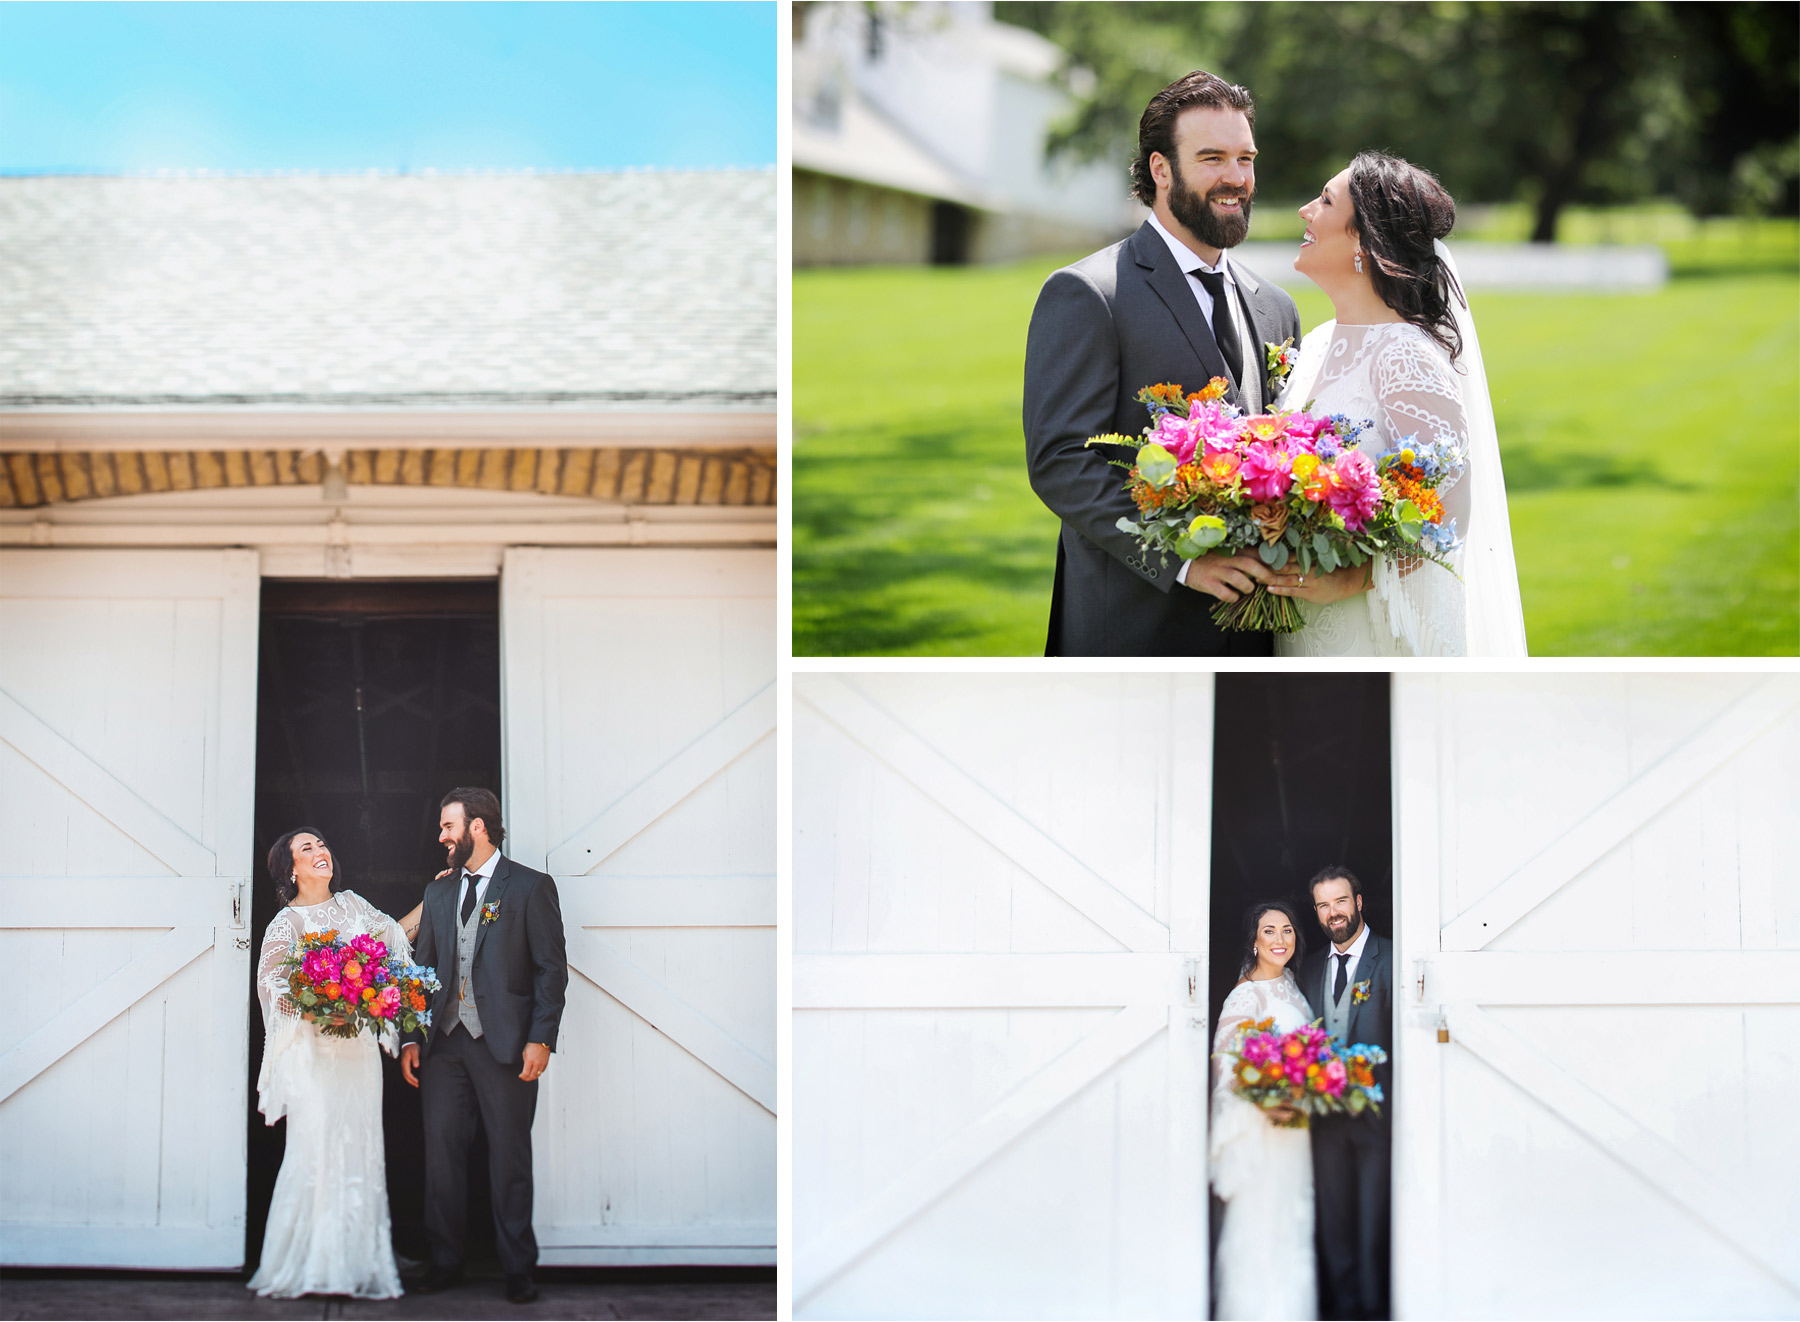 10-Vick-Photography-Rochester-Minnesota-Mayowood-Stone-Barn-Country-Wedding-Summer-Bride-Groom-White-Doors-Lizz-and-Brady.jpg